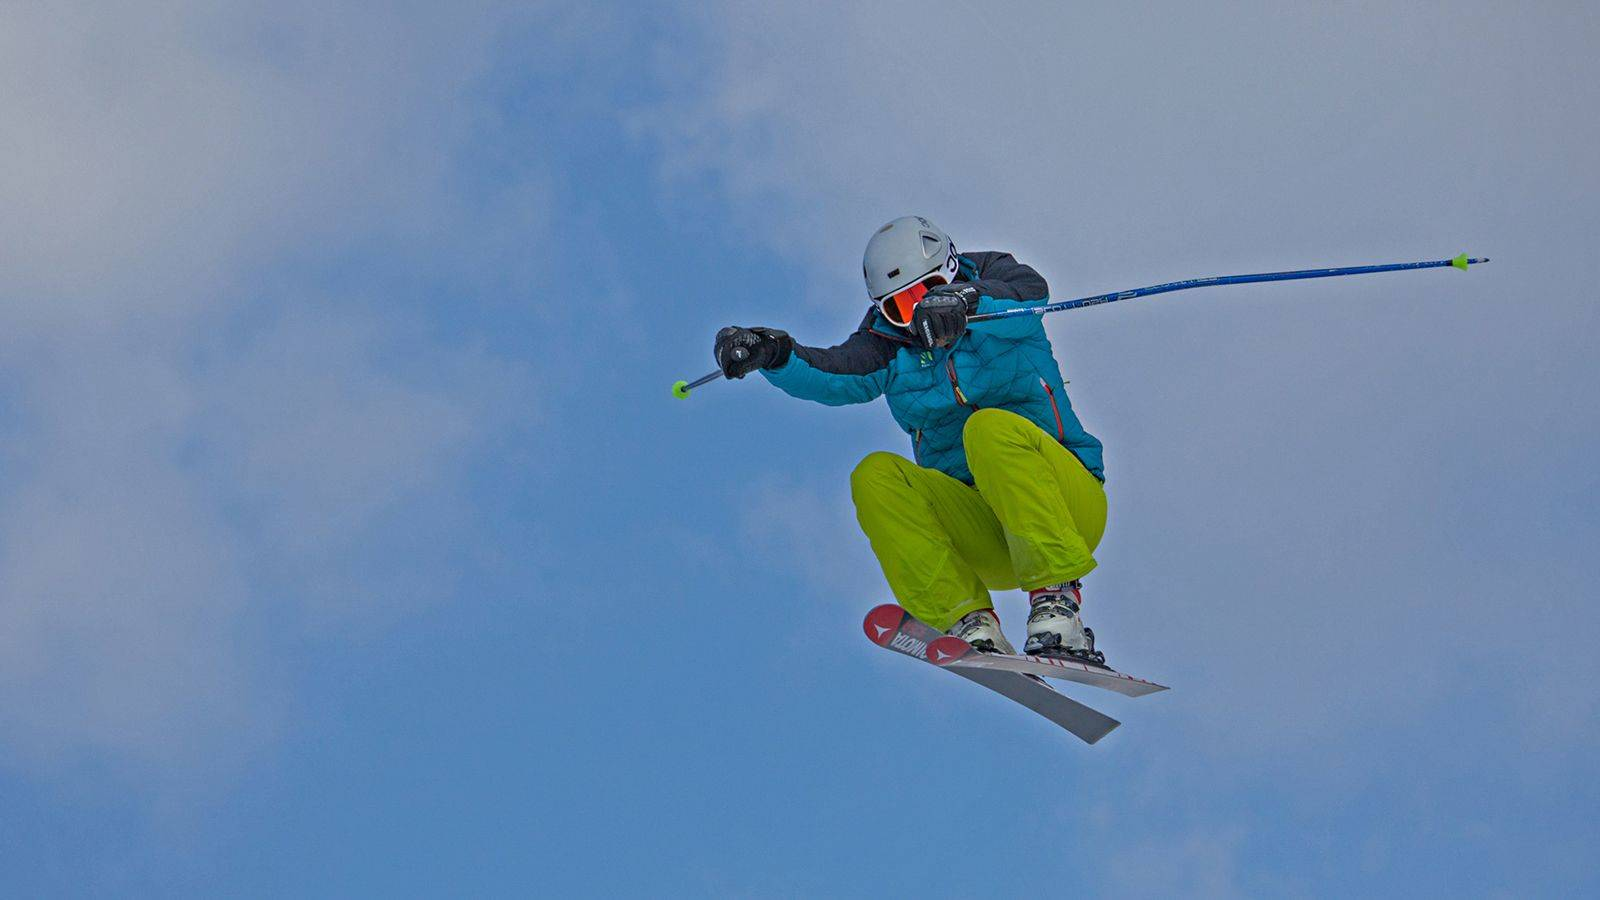 A skier does a stunt on the ski slopes of Passo San Pellegrino